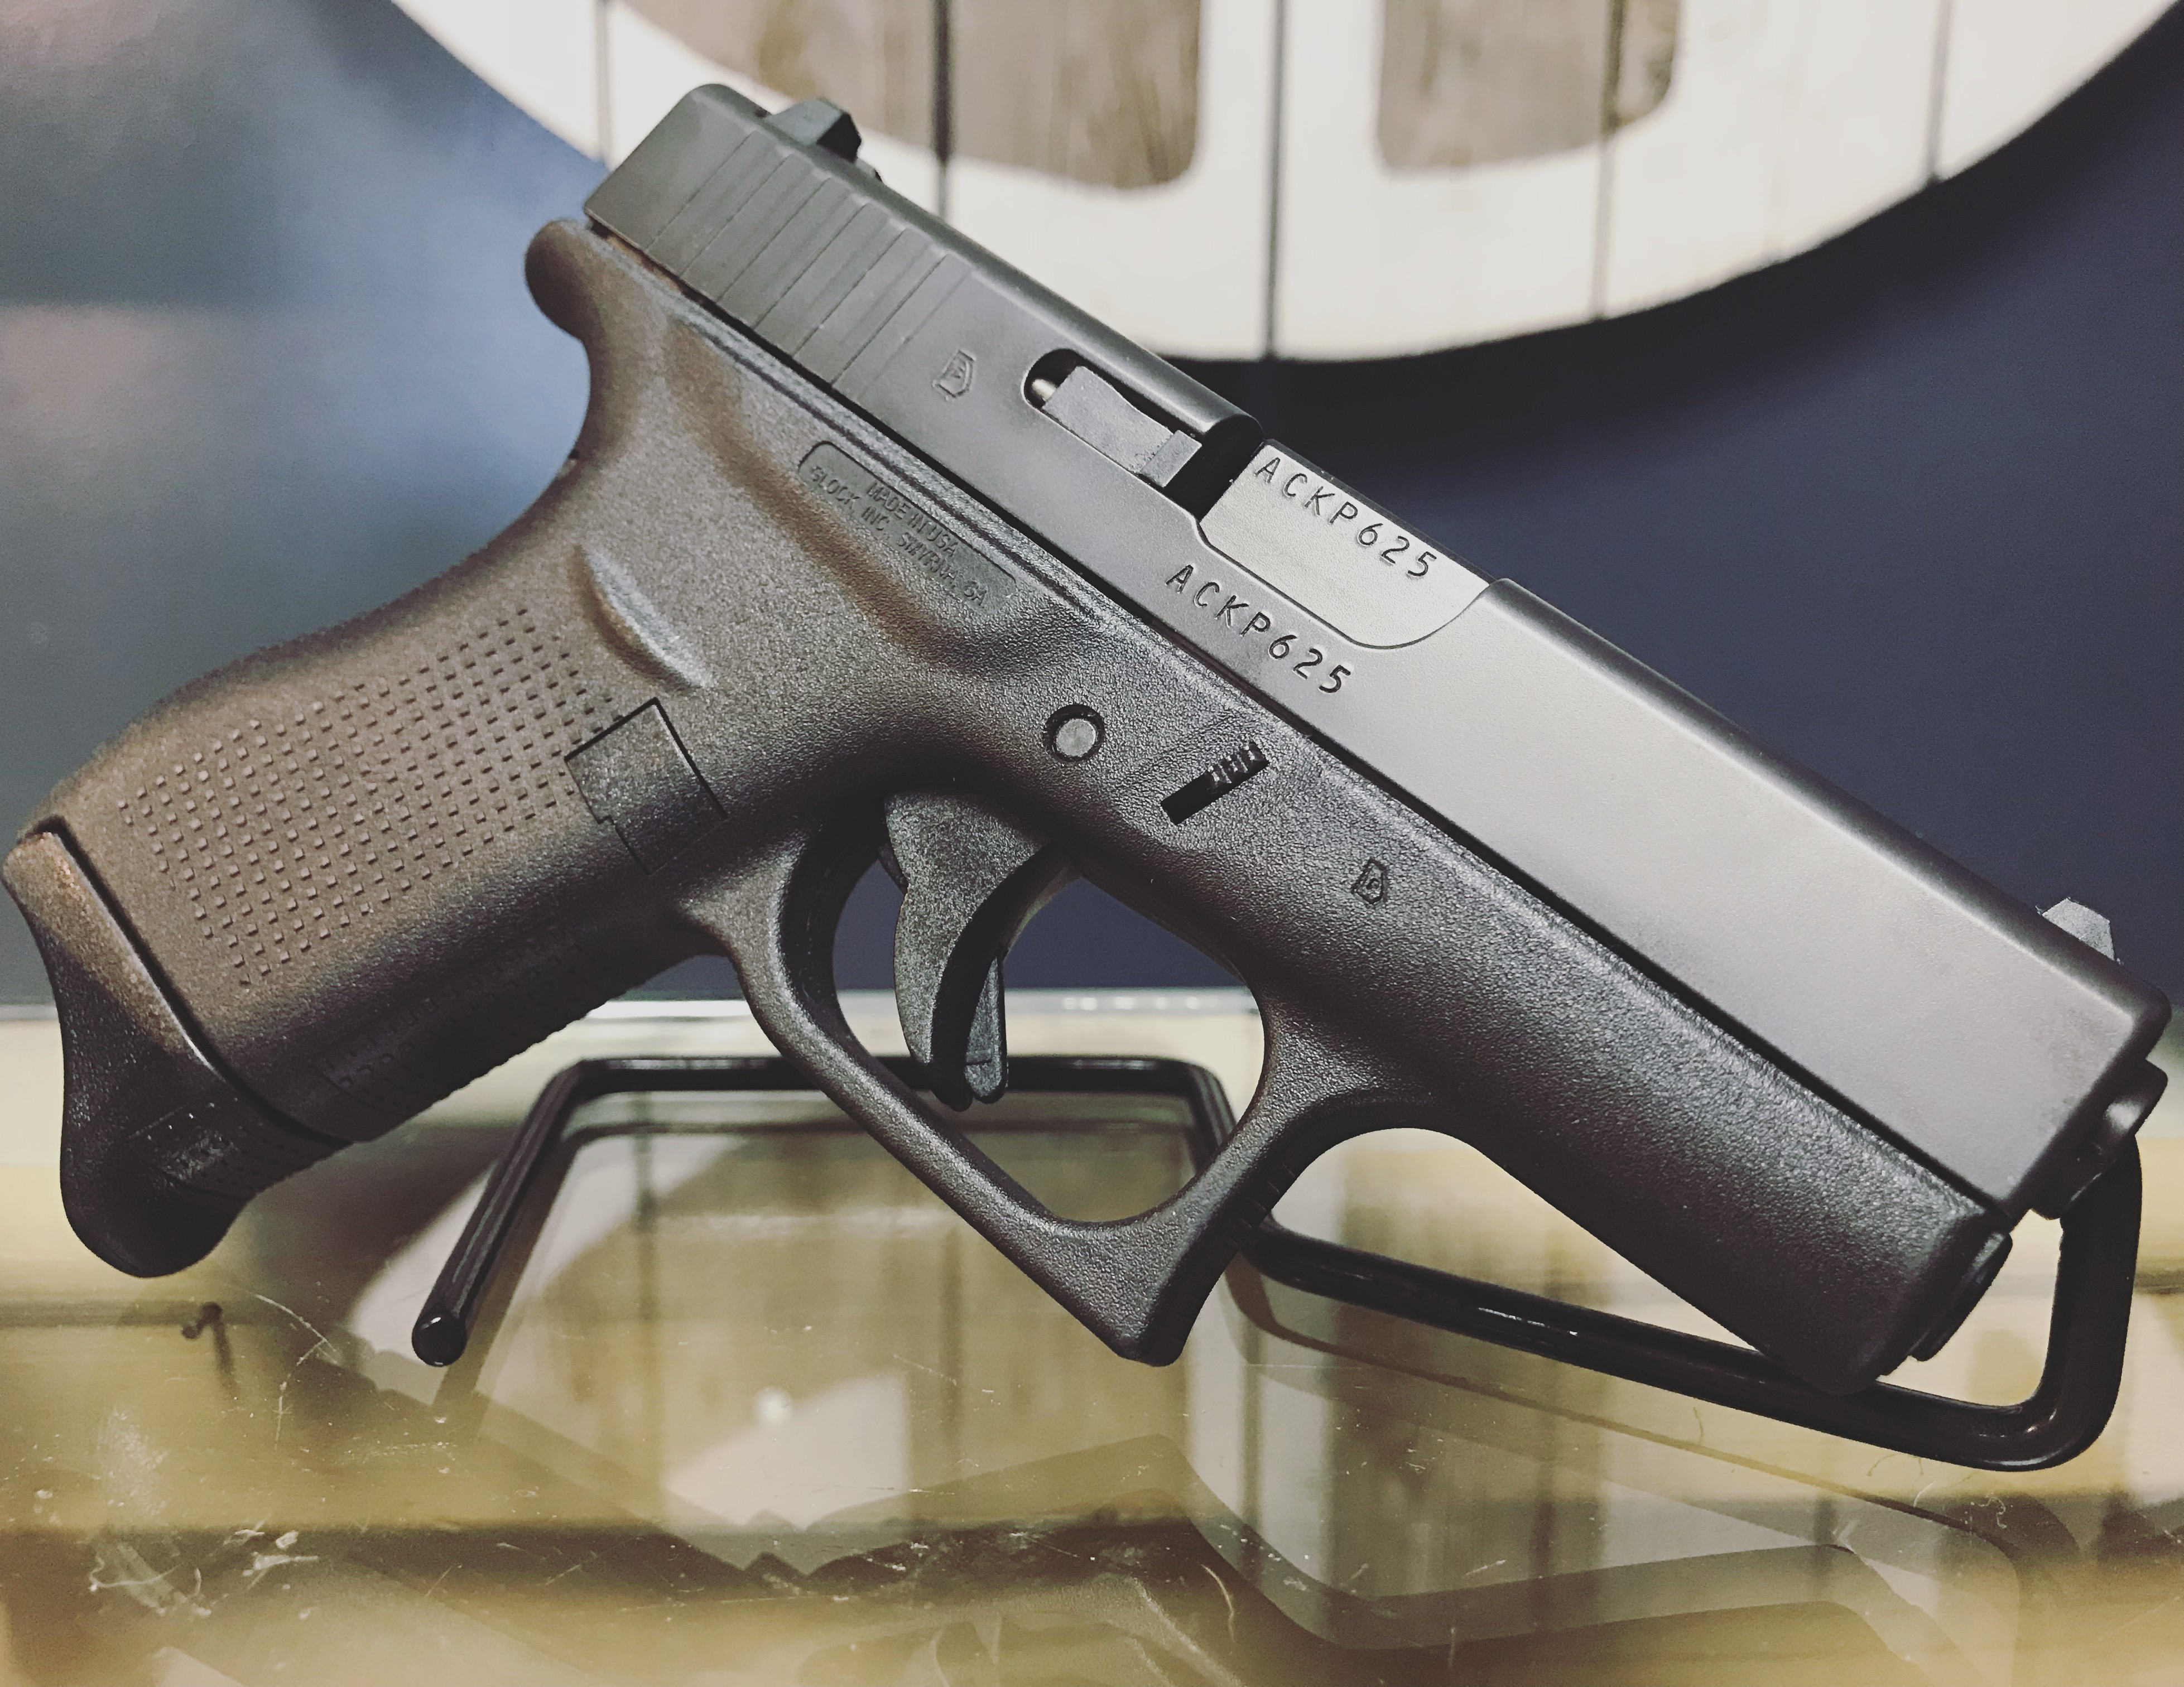 For Sale - Used Glock 42  380 - $320 | Gun Store | Council Bluffs